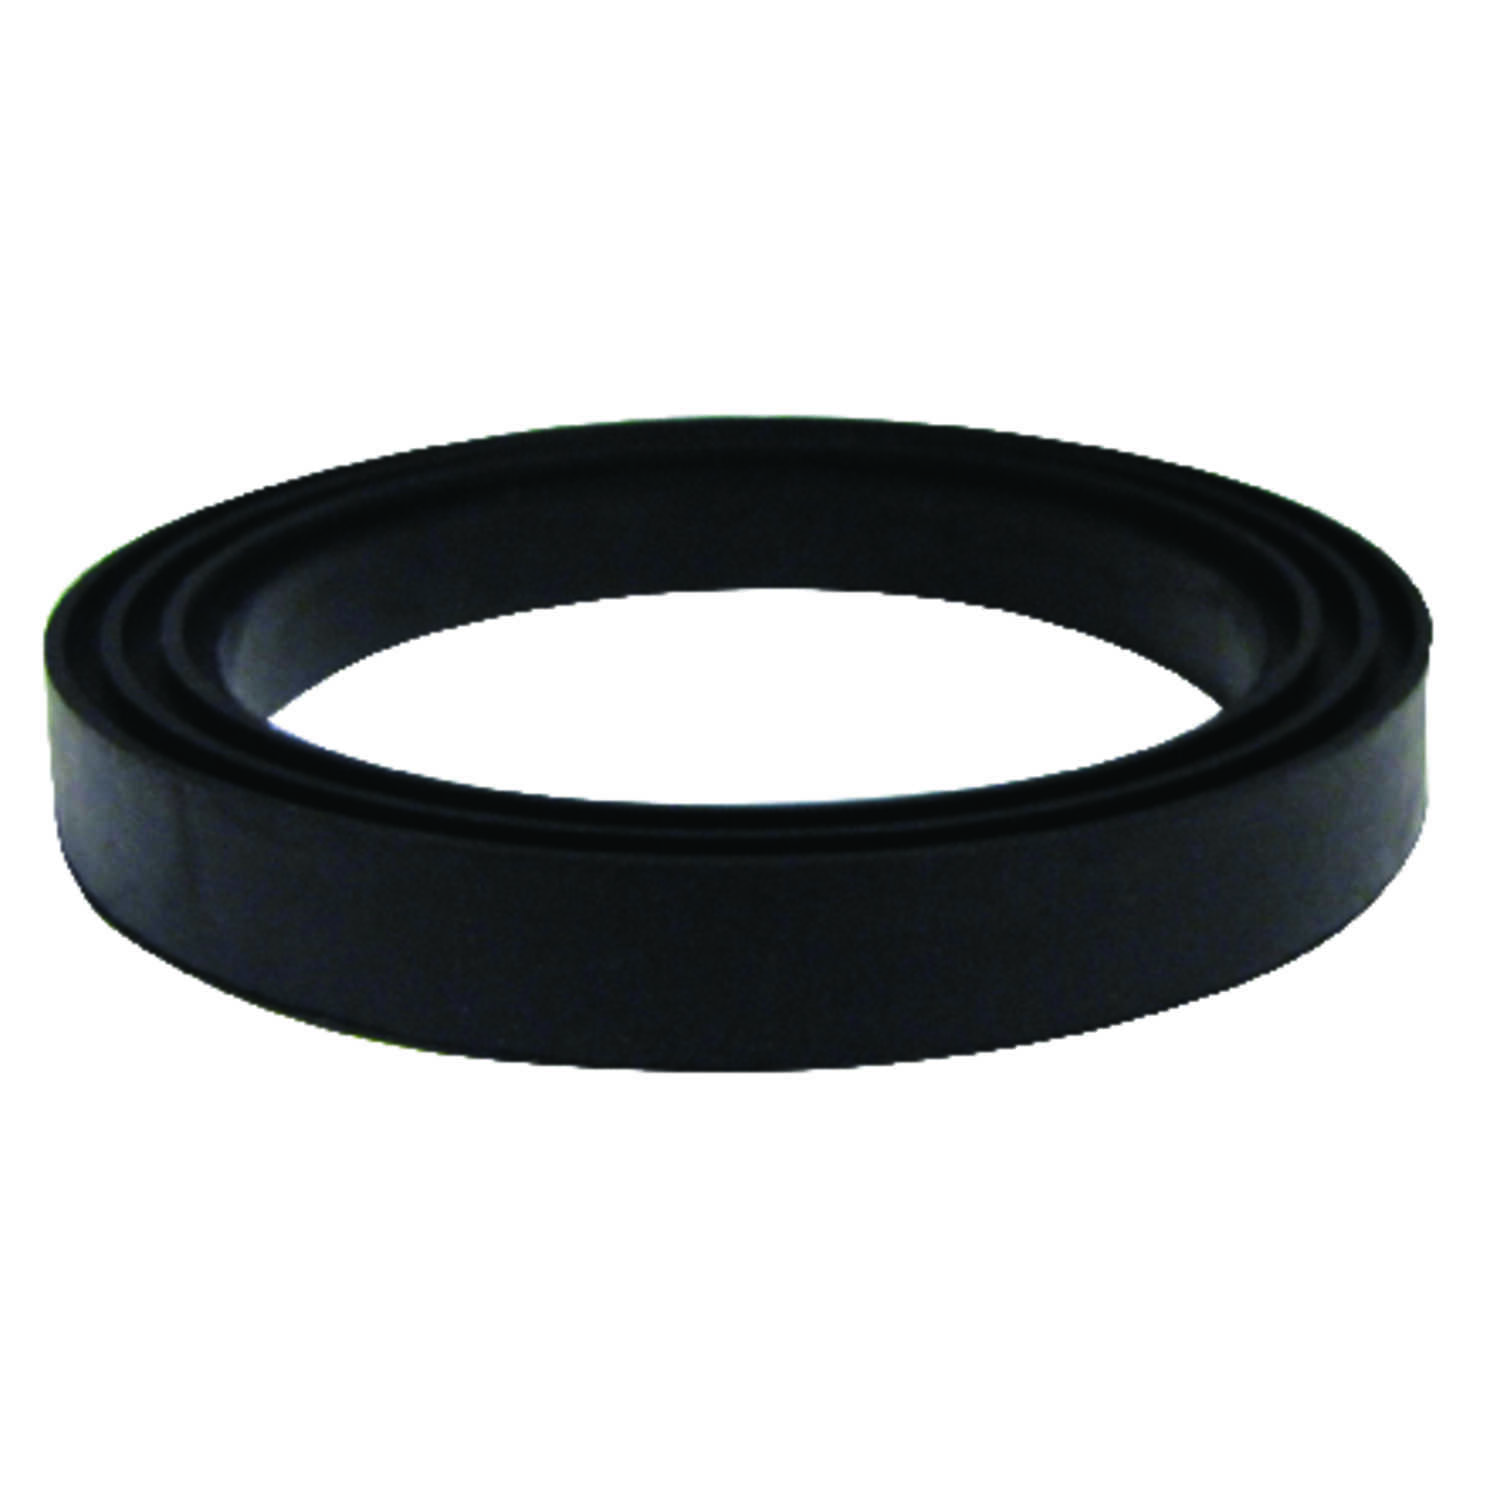 Keeney  Flush Valve Seal  Black  Rubber  For Toto, Gerber, Mansfield, Crane, Jacuzzi and other